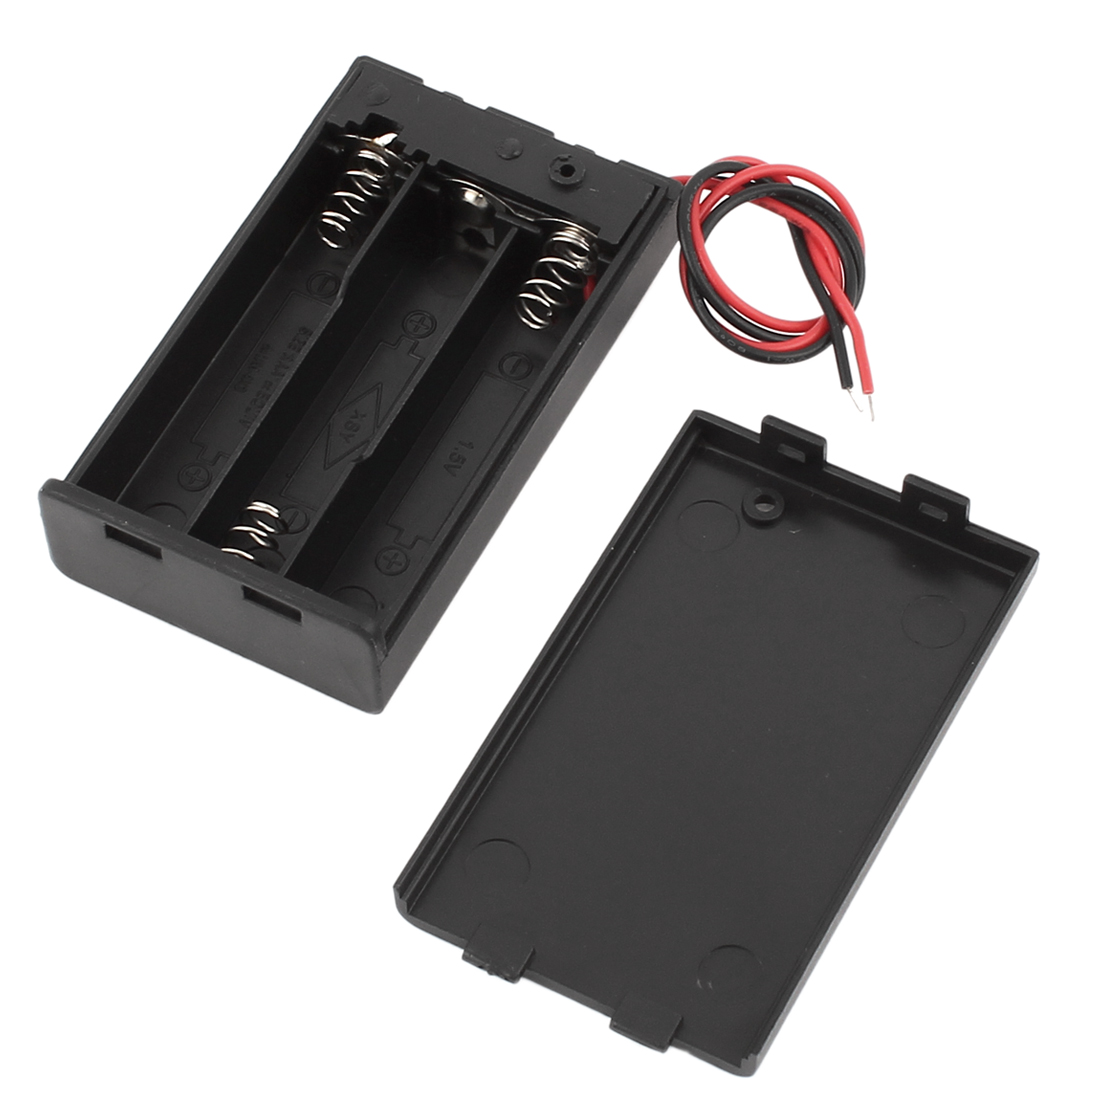 ON/OFF Switch Wire Leads Covered Battery Case for 3x1.5V AAA Batteries